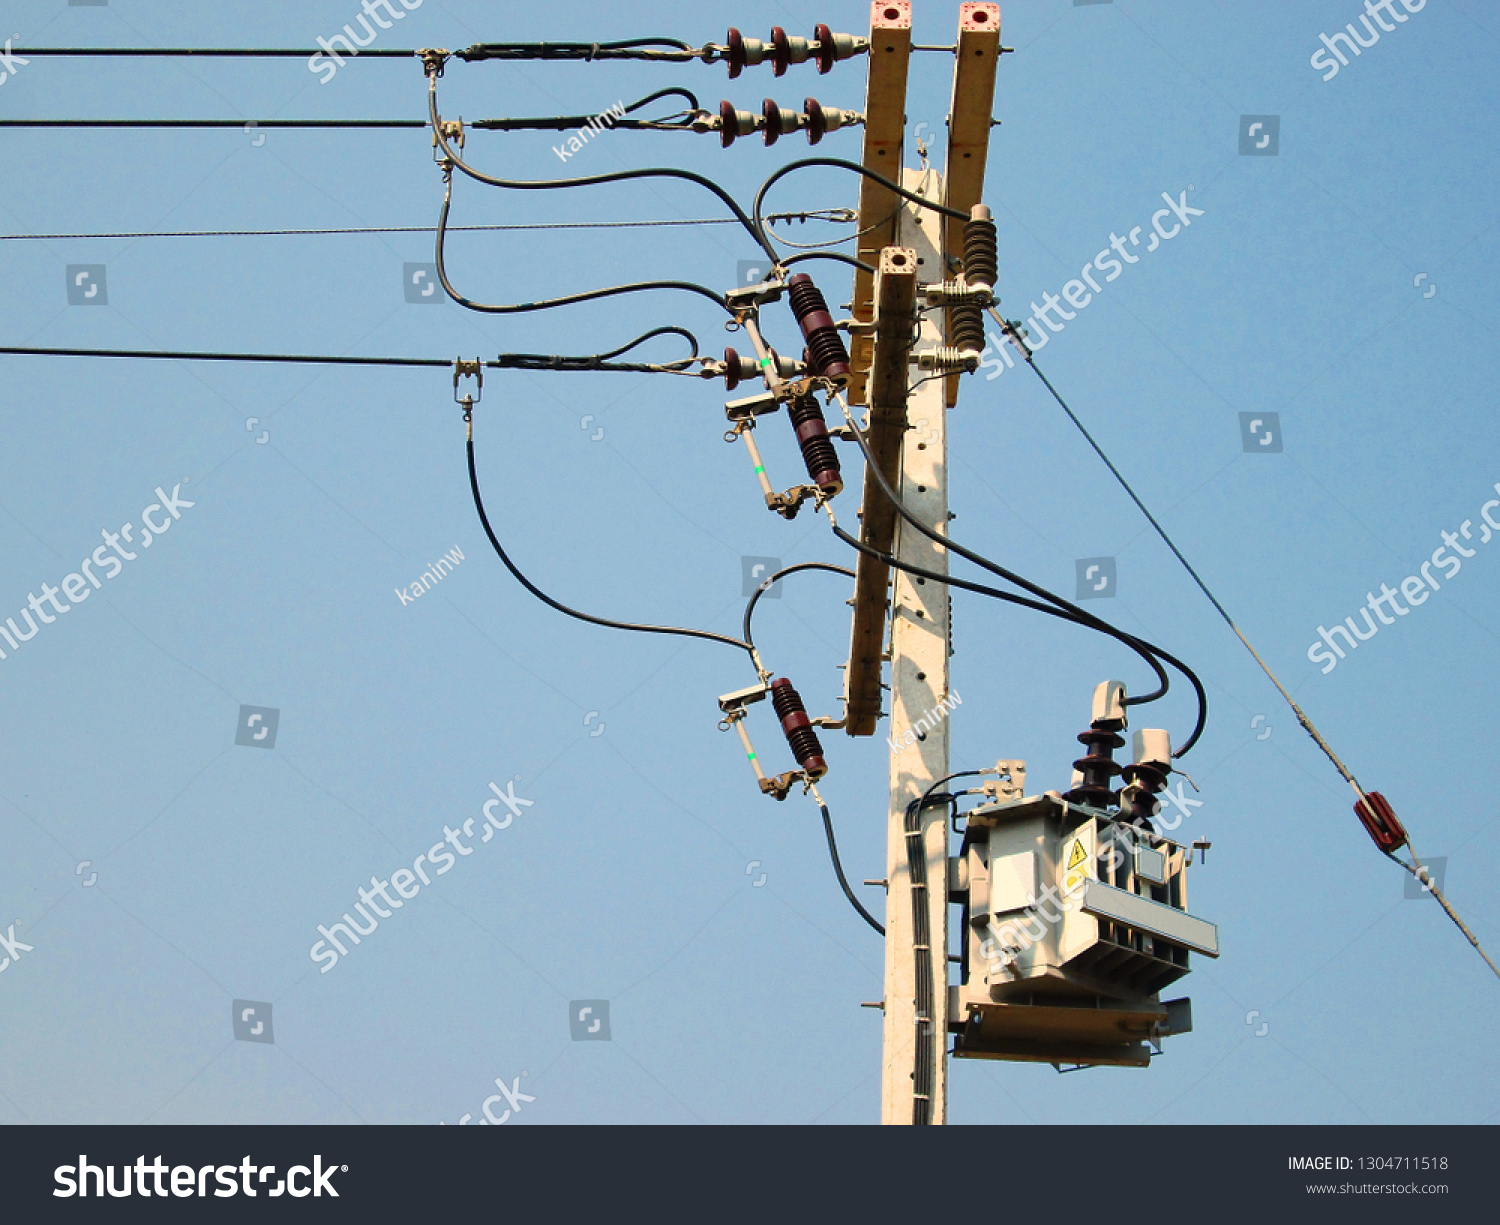 hight resolution of distribution transformer on pole three phase transformer type for converting high voltage ac to low